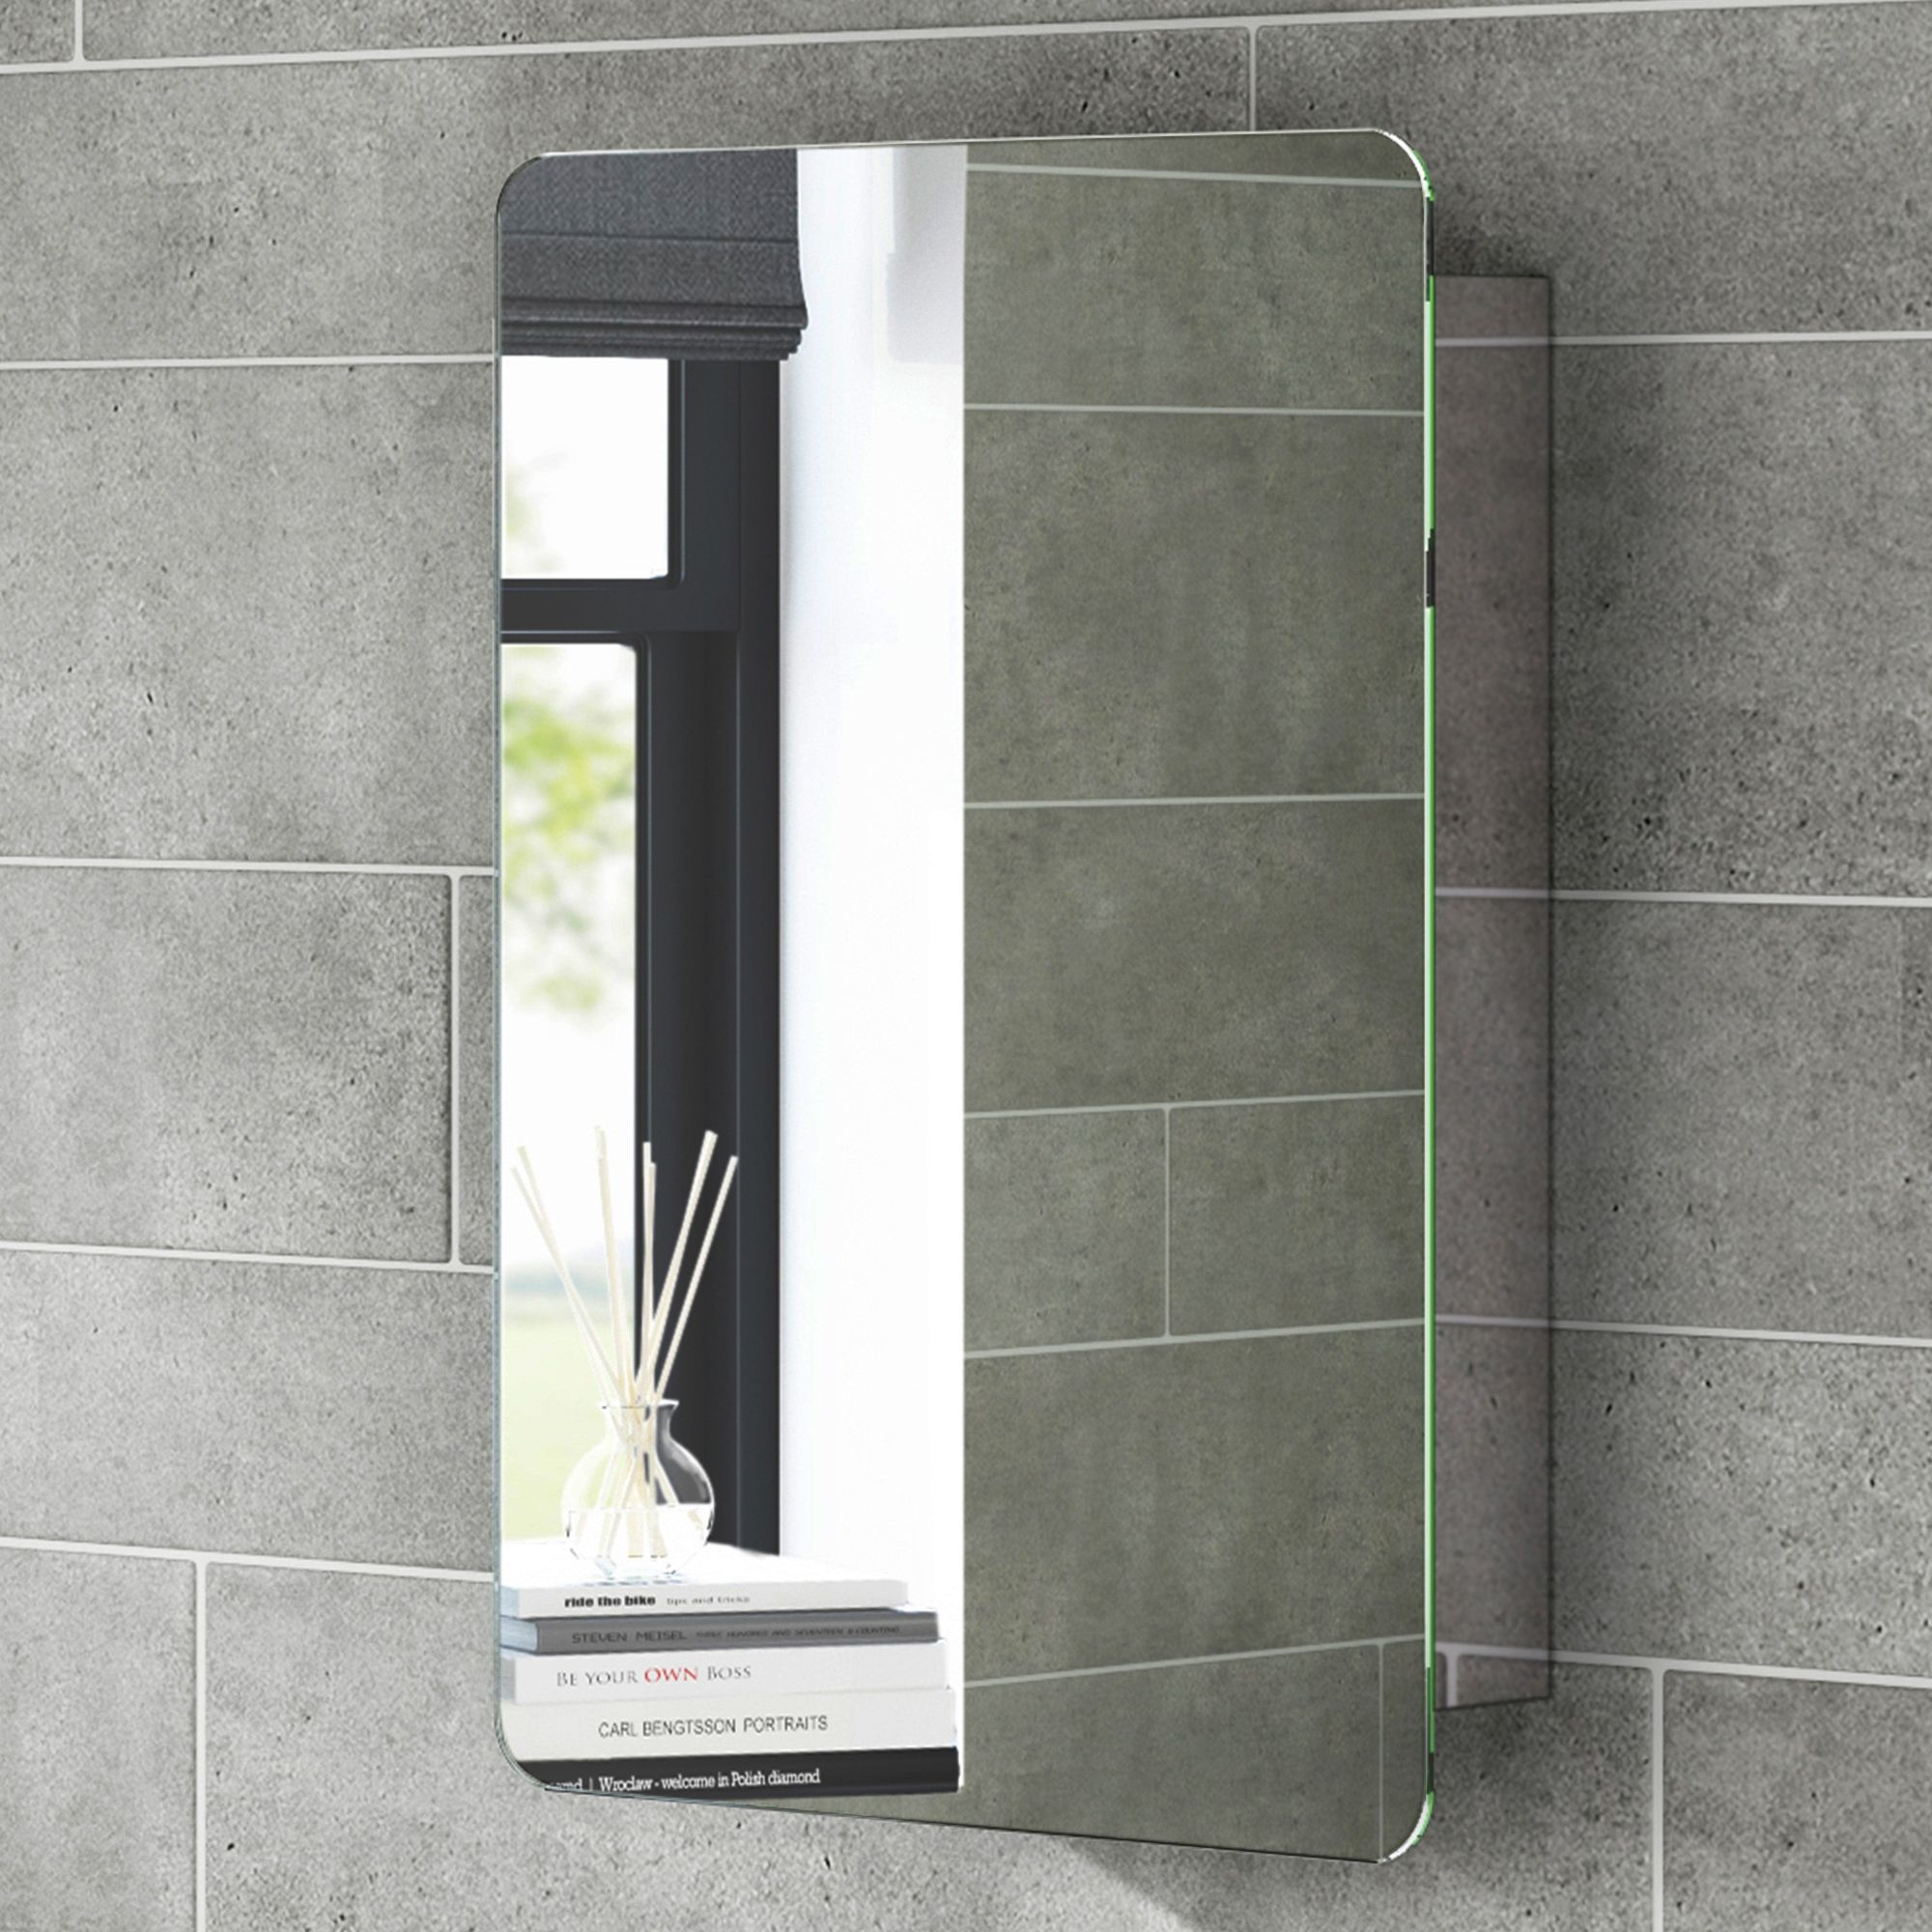 Mirrored Bathroom Cabinets Sliding Door Mirrors Are A Ful Way To Finish Your Room You Need Evaluate The Dimensions Of Bat